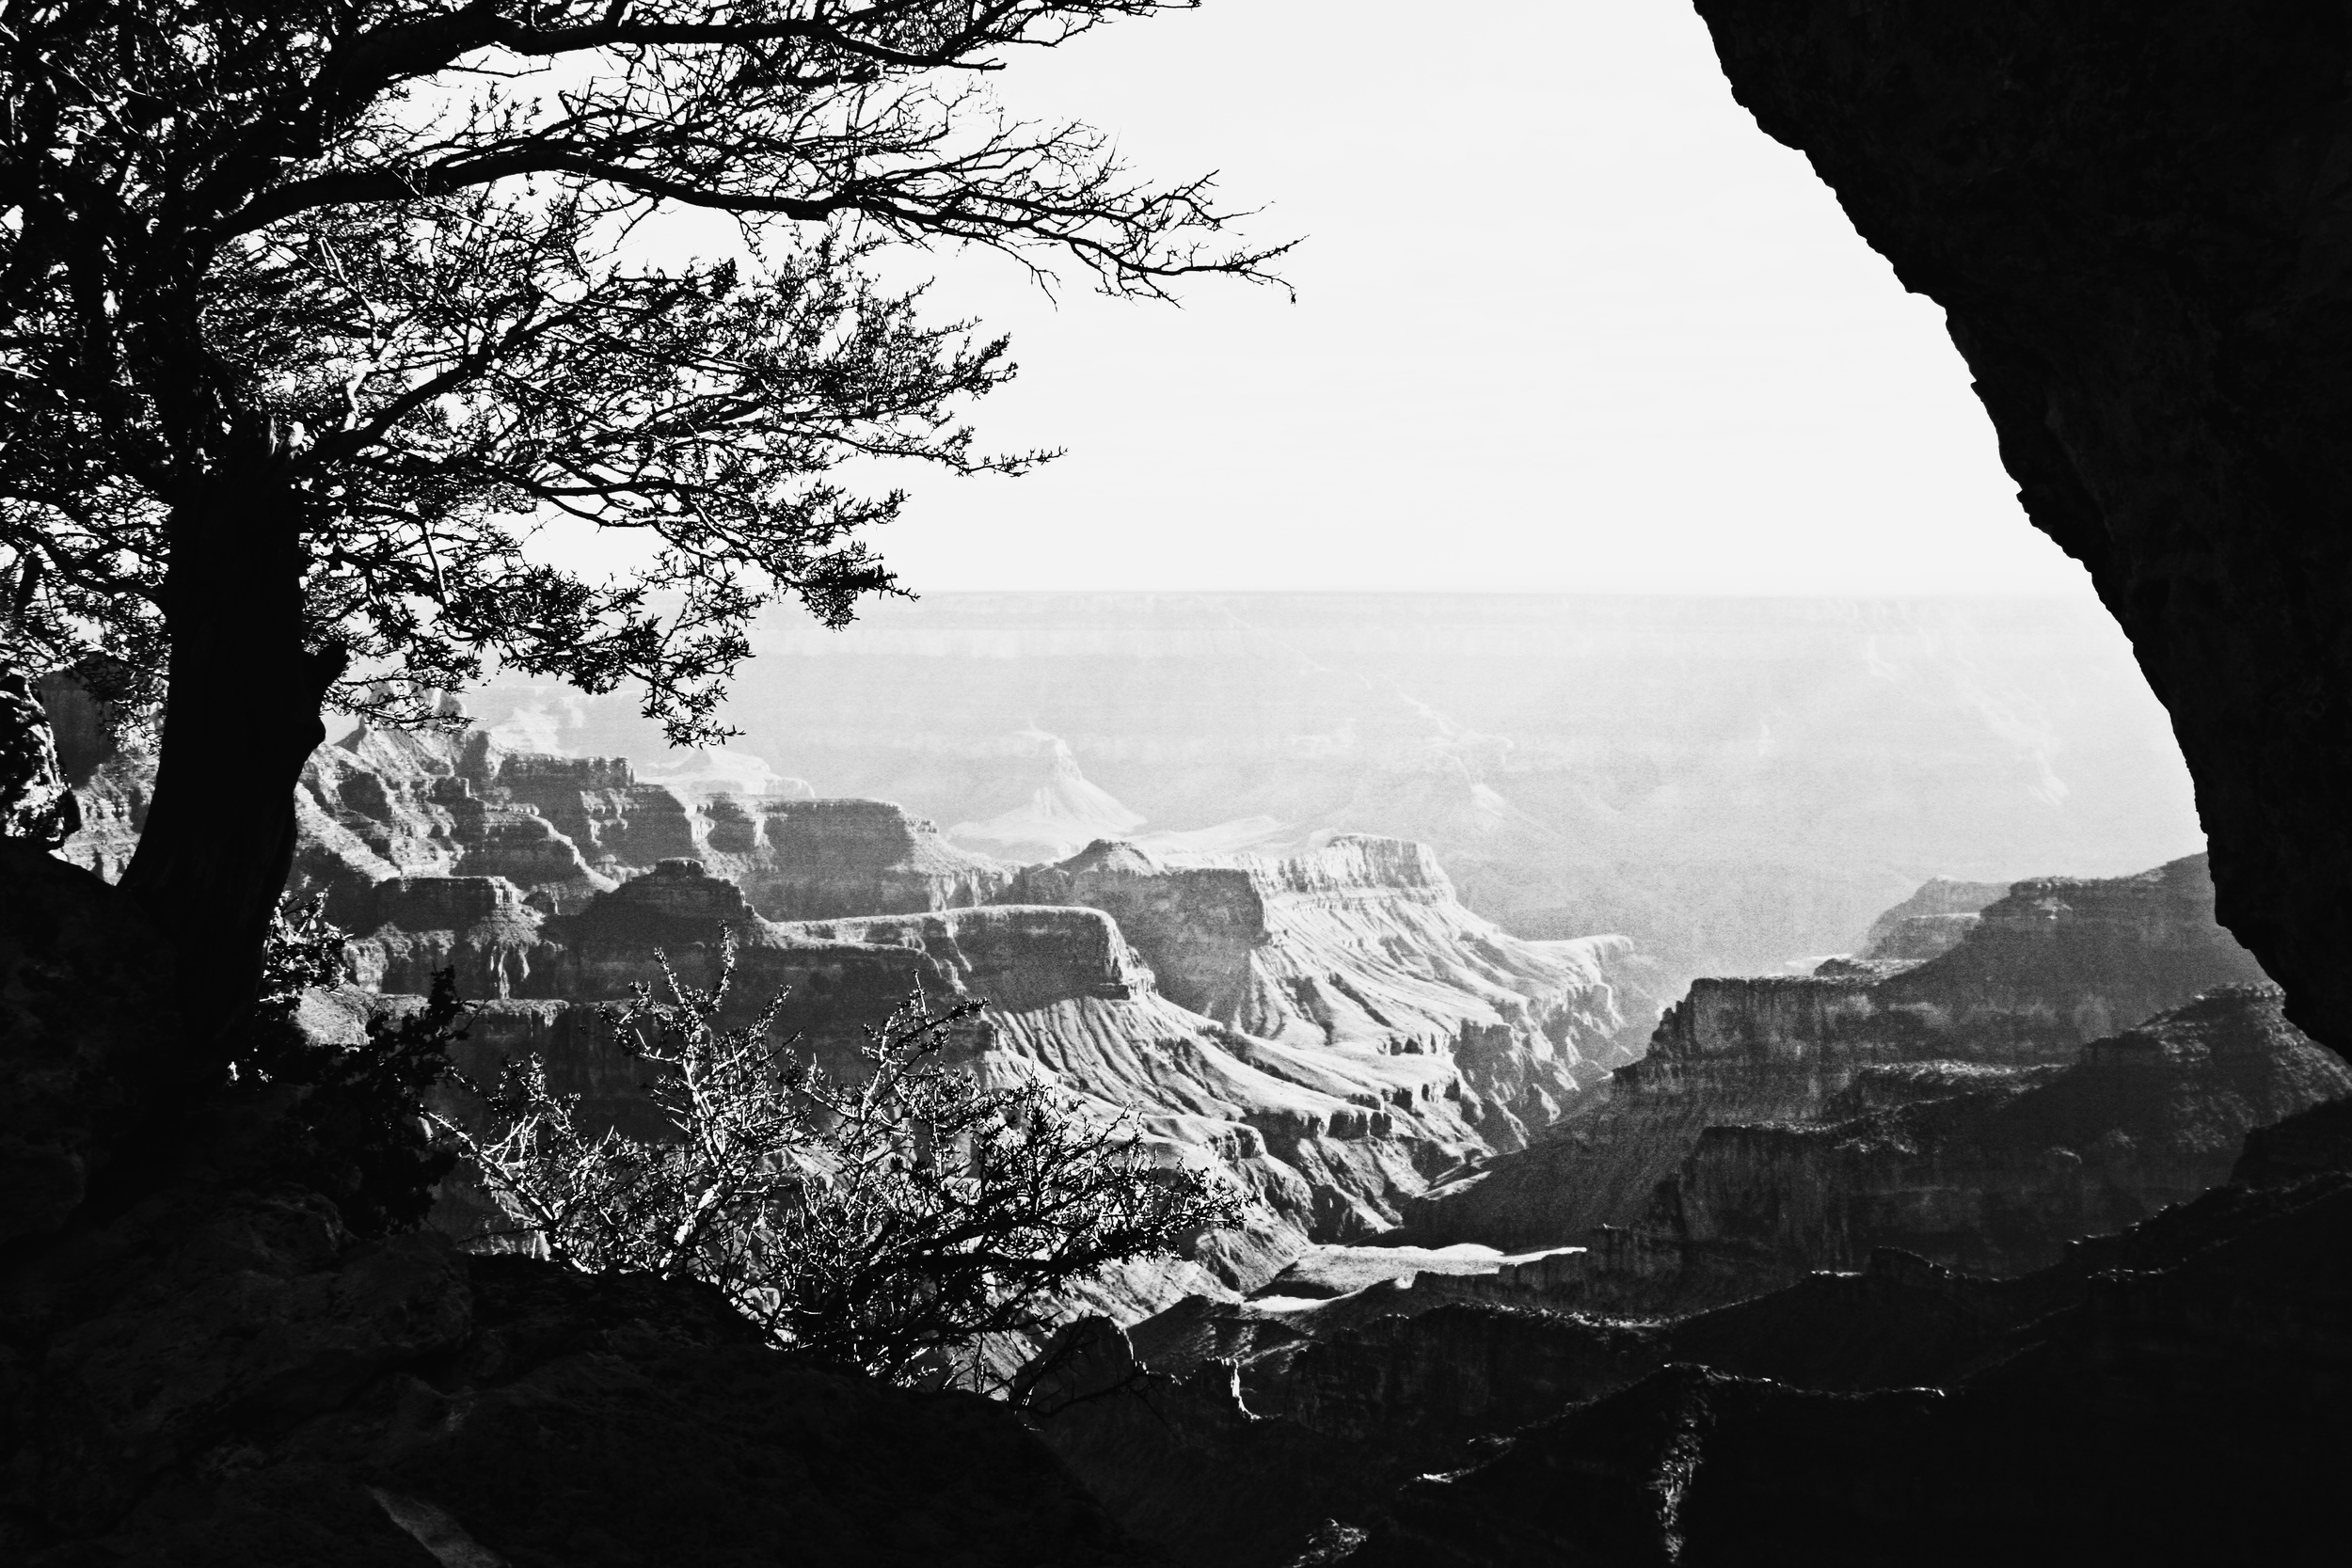 Mattie_Kannard_Grand_Canyon_North_Rim_2015.jpg